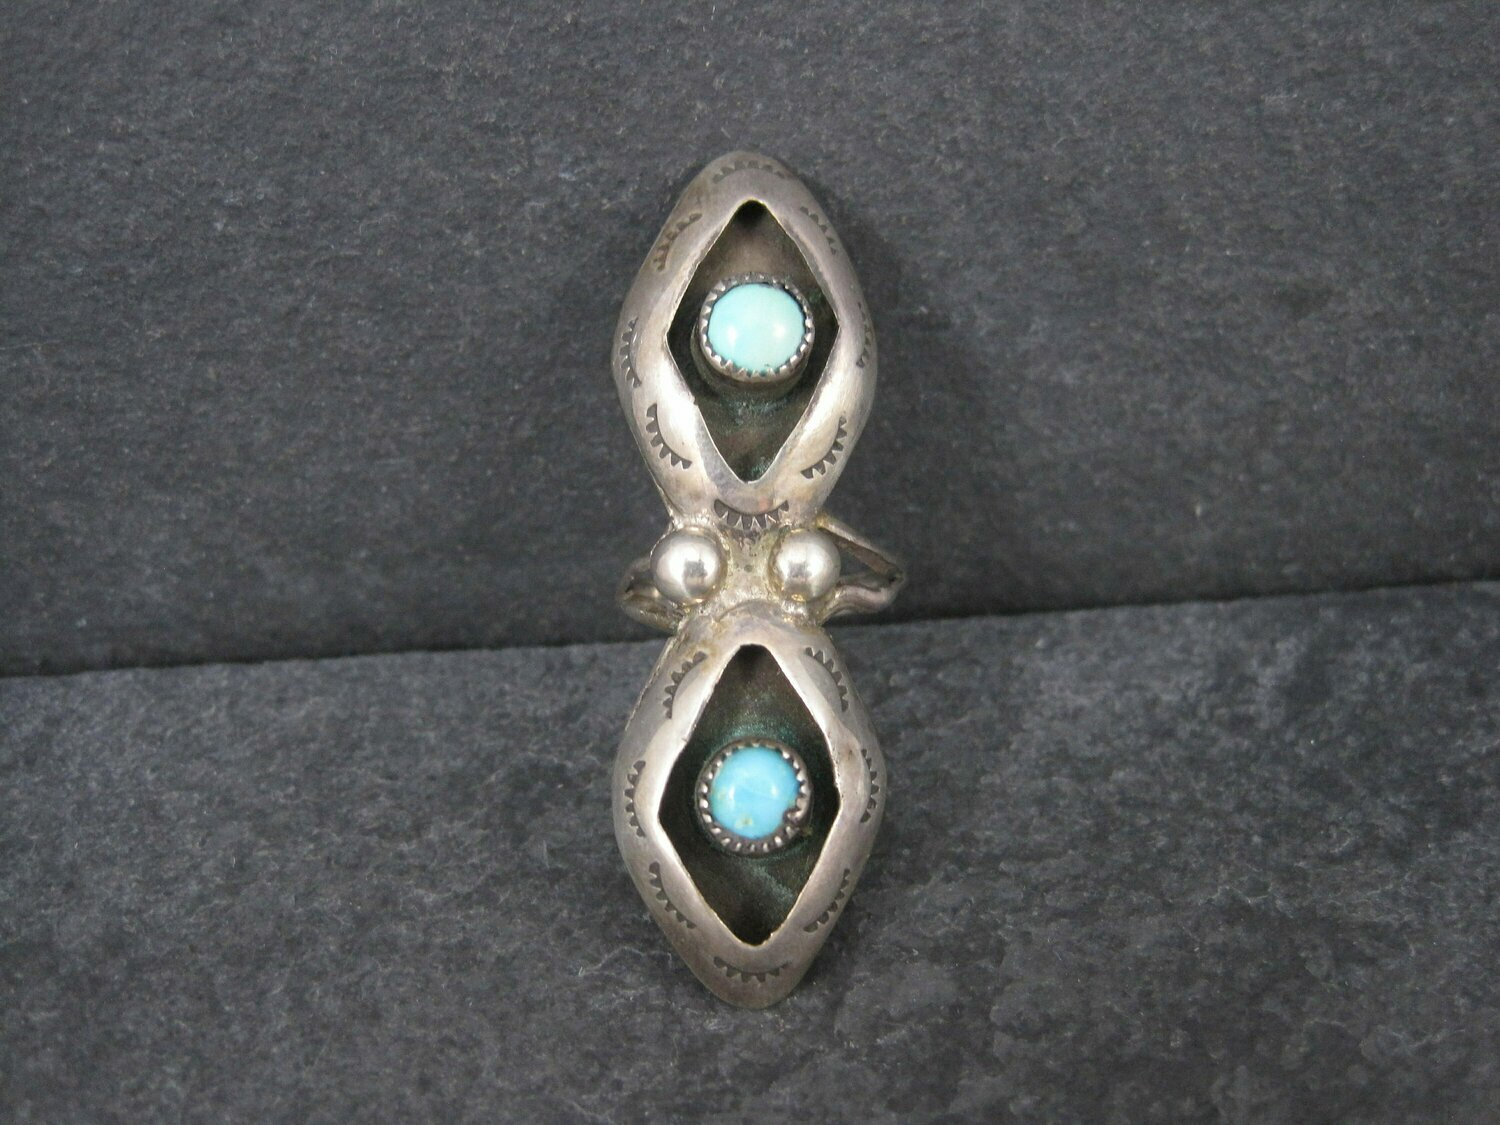 Long Vintage Turquoise Shadowbox Ring Dead Pawn Size 5